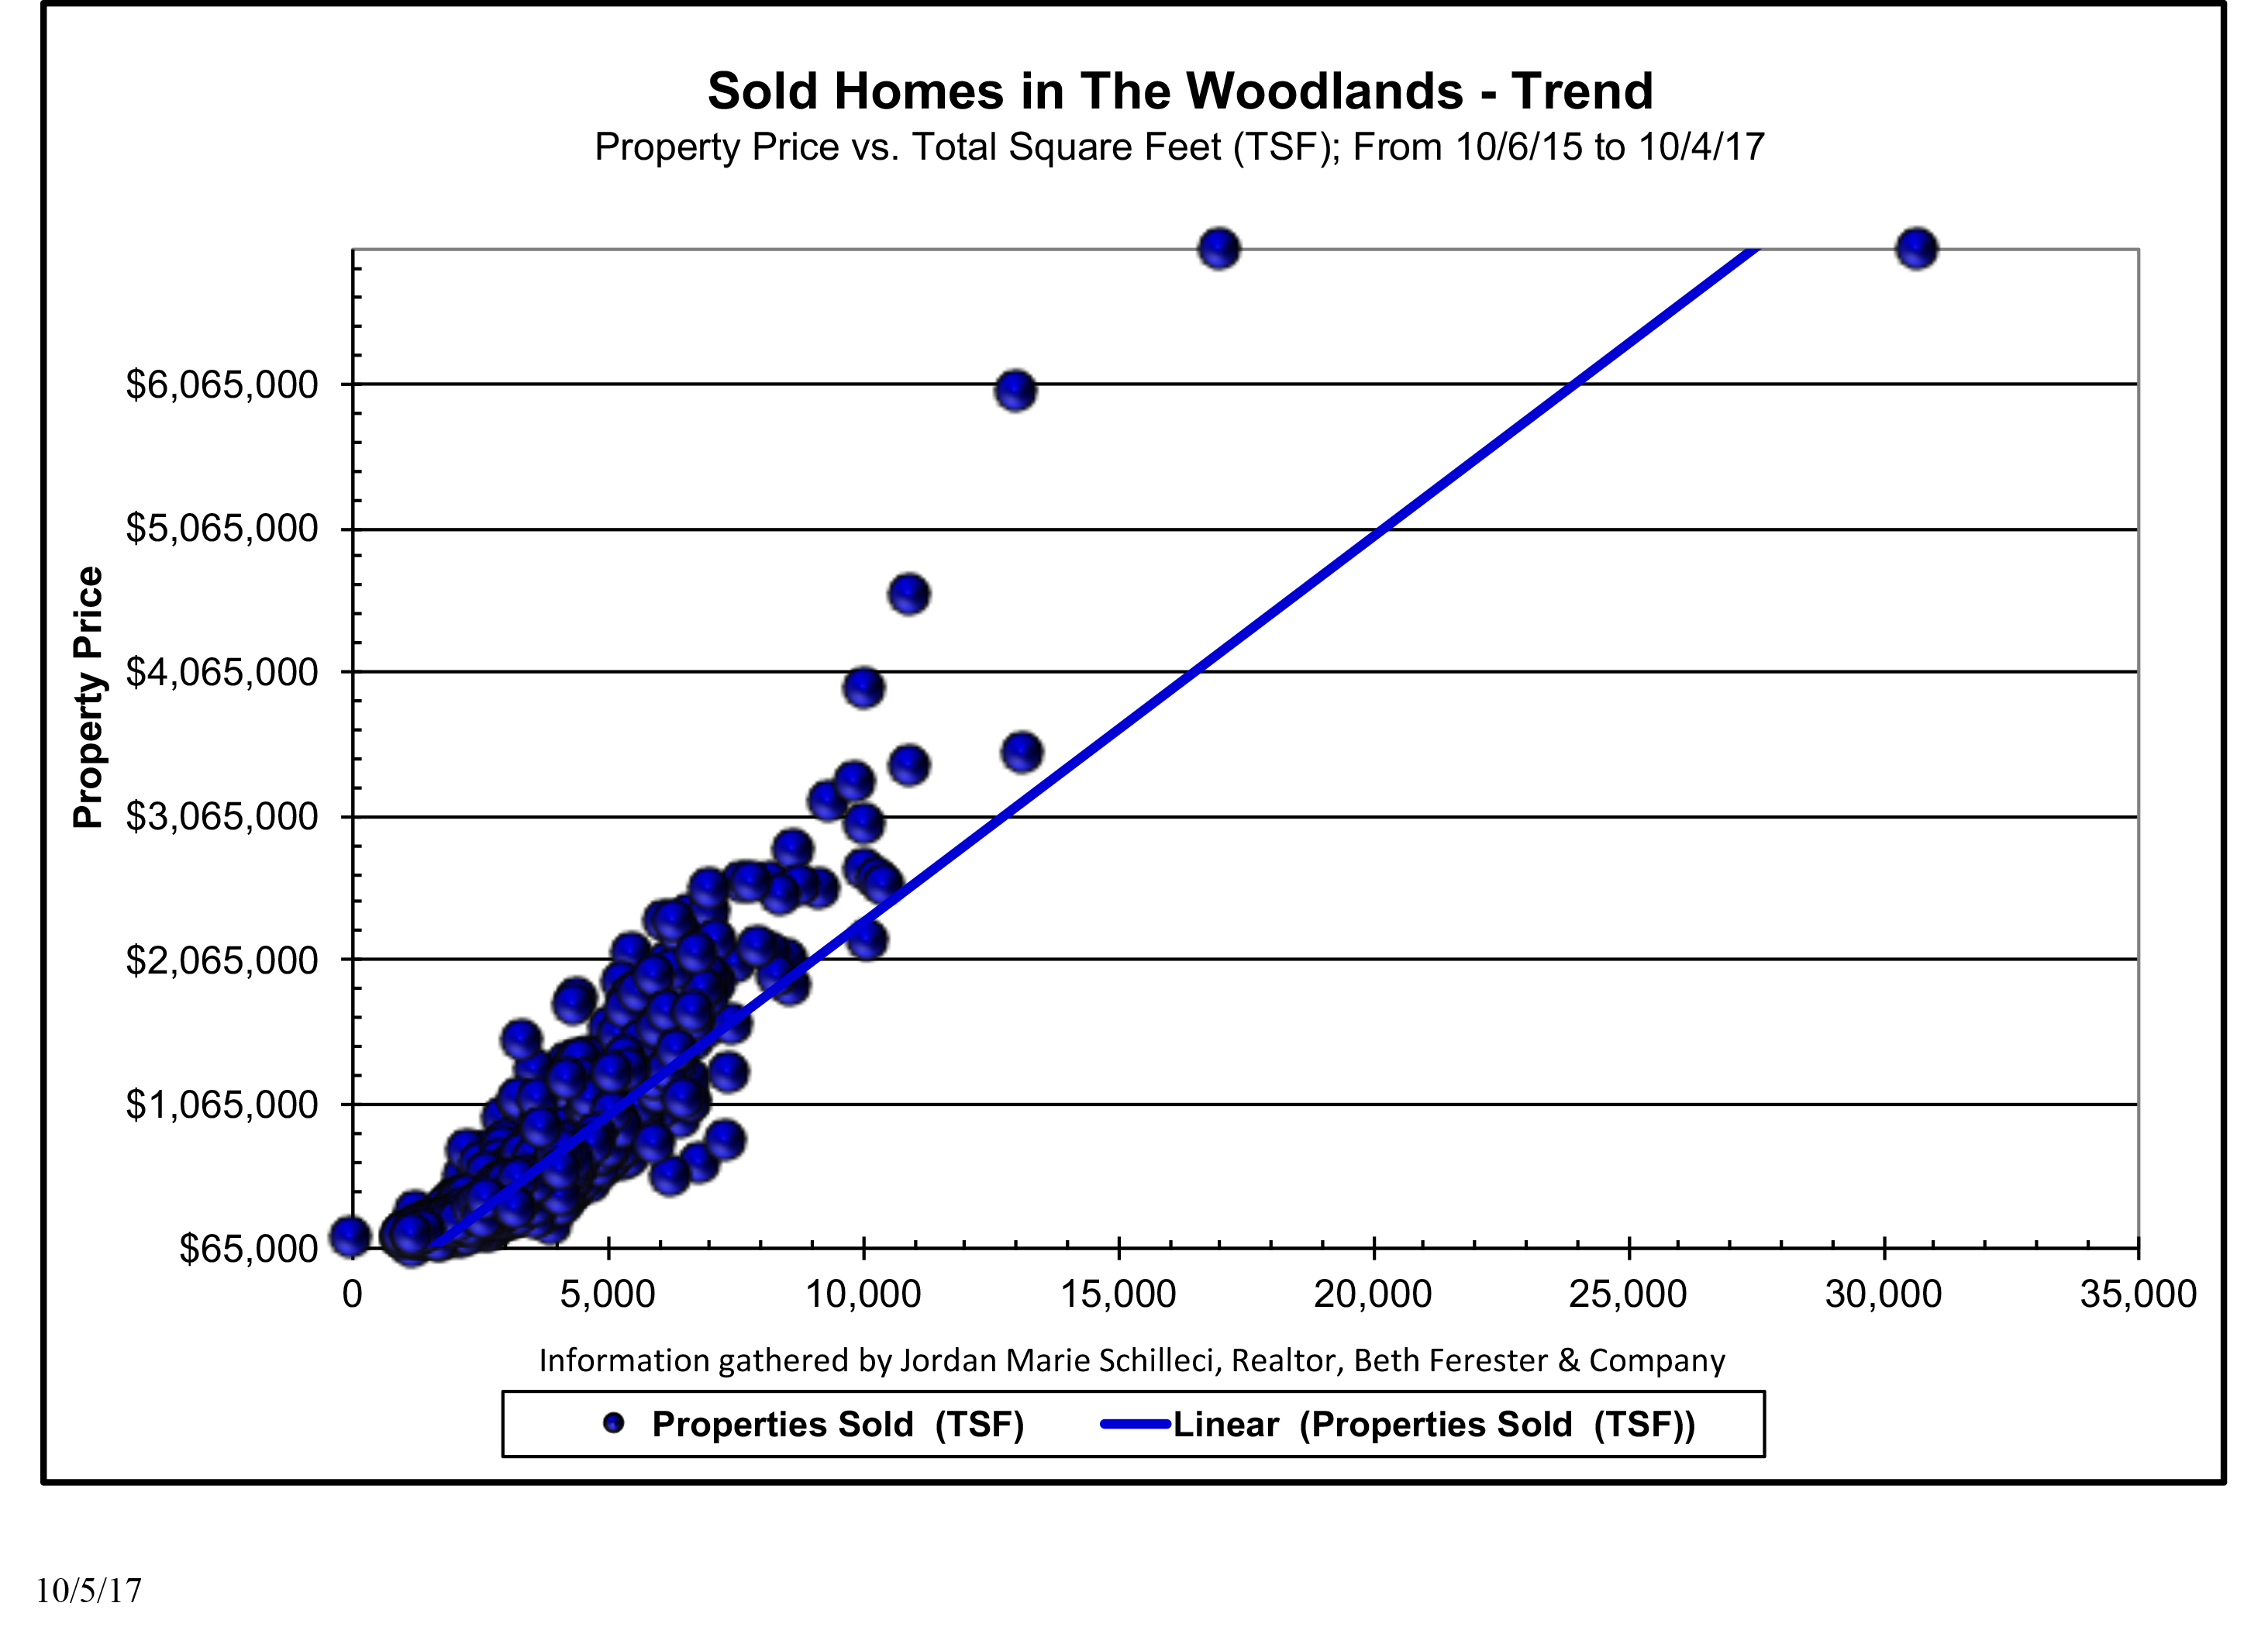 New Home Sales The Woodlands